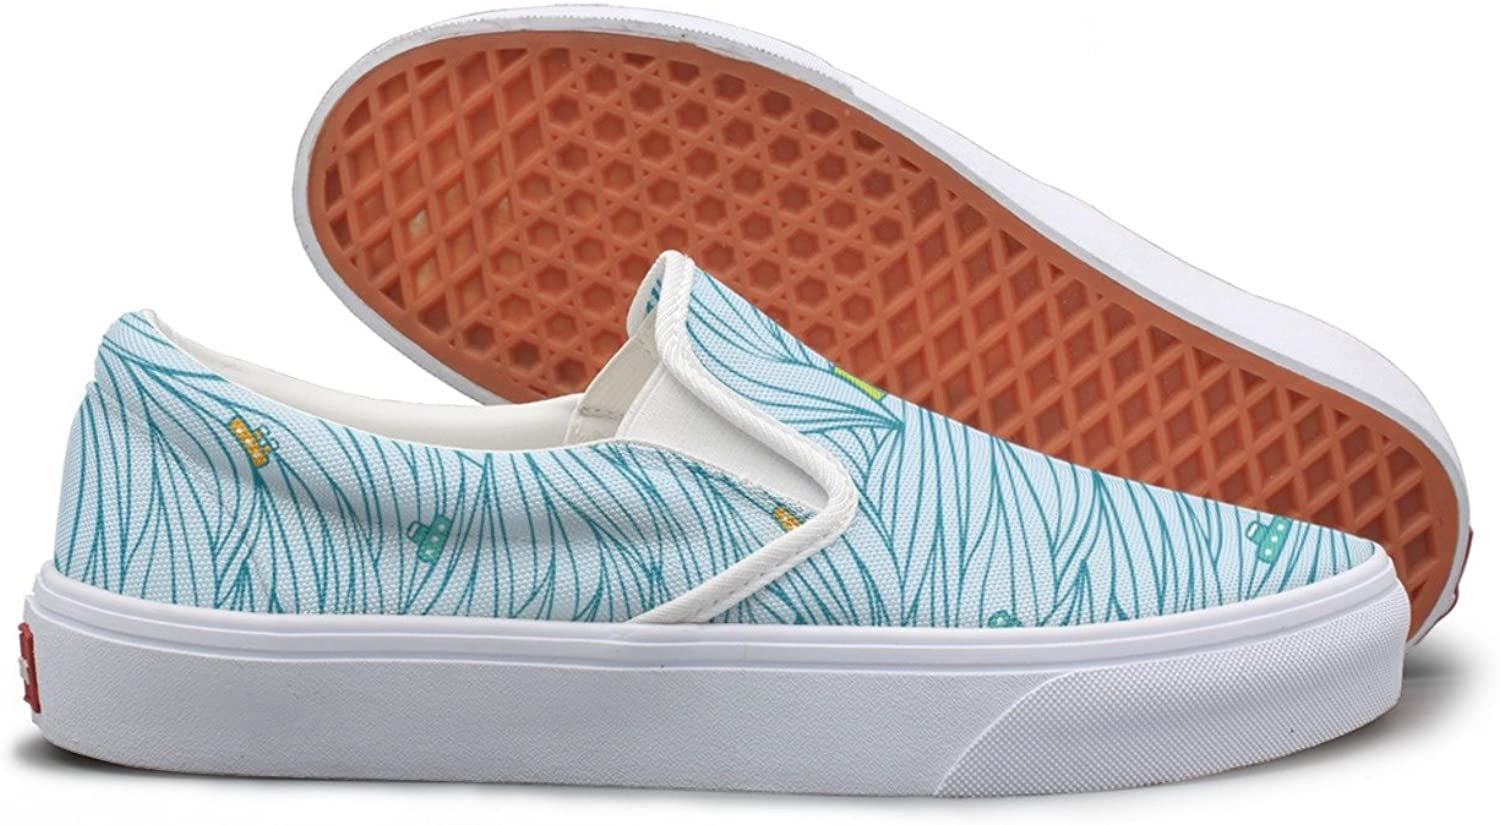 Light Waves Pattern Canvas shoes Women Casual